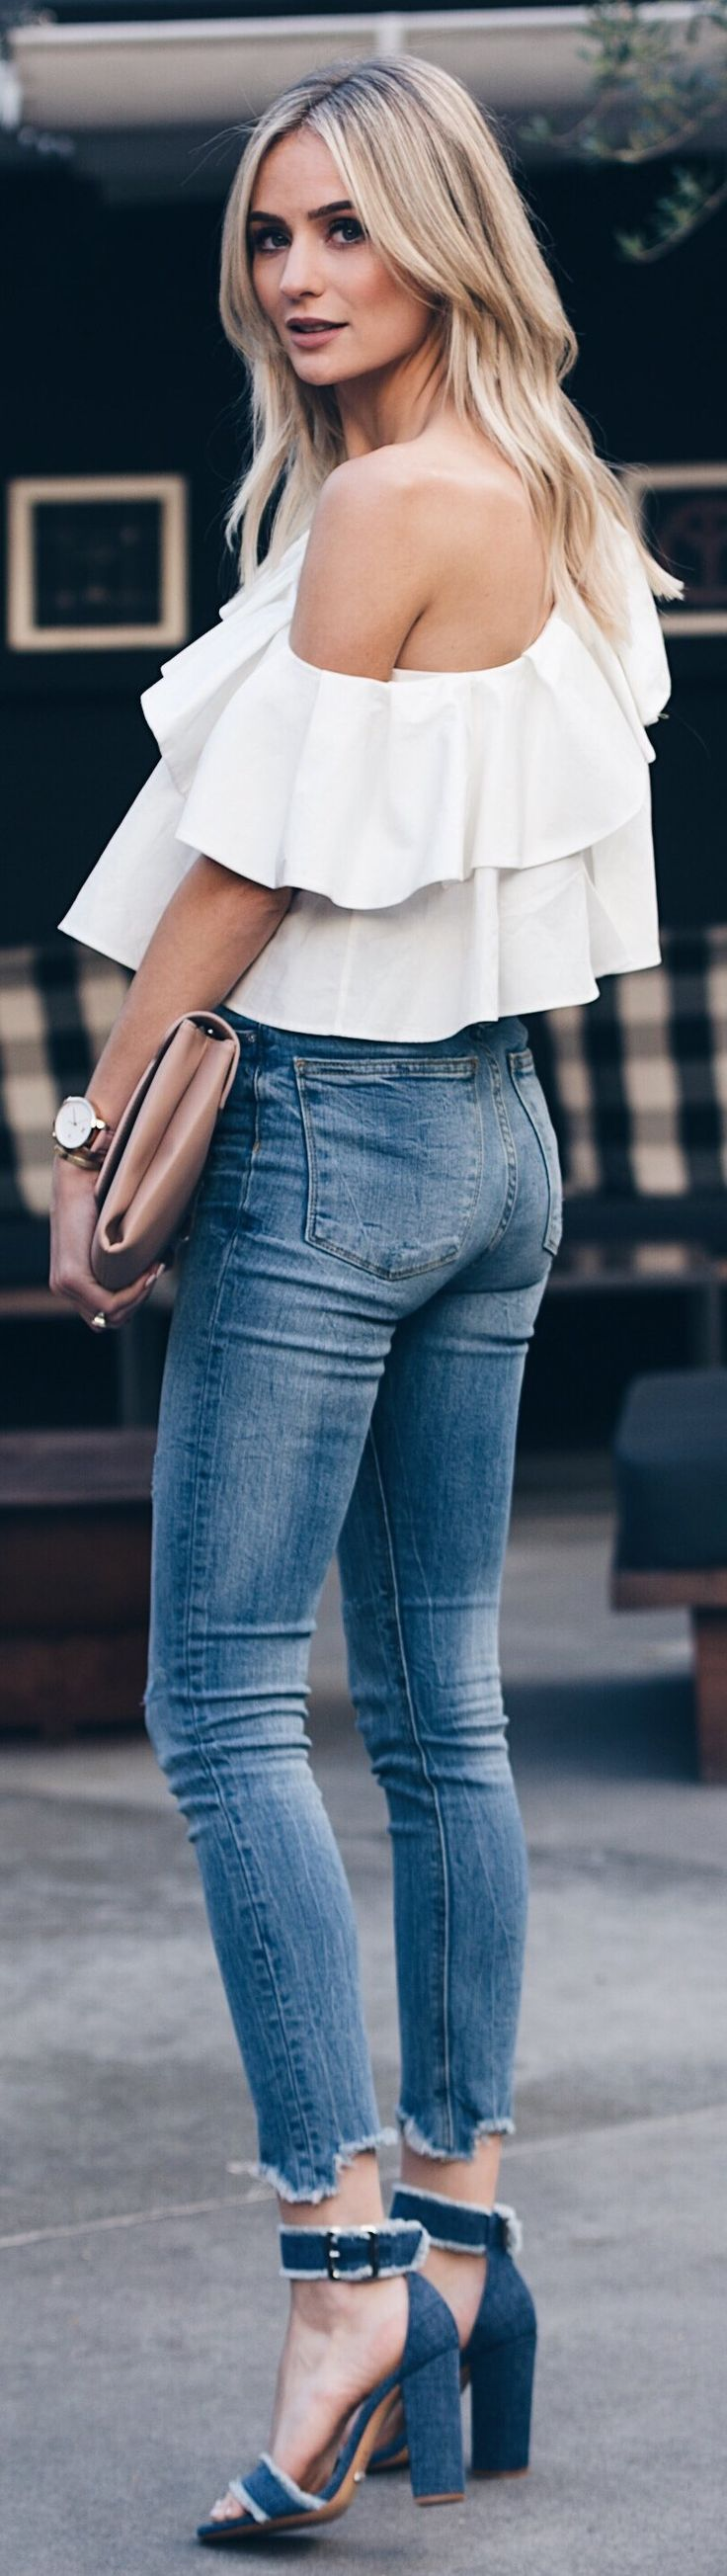 stylish spring outfits /  White Open Shoulder Blouse / Skinny Jeans / Navy Sandals